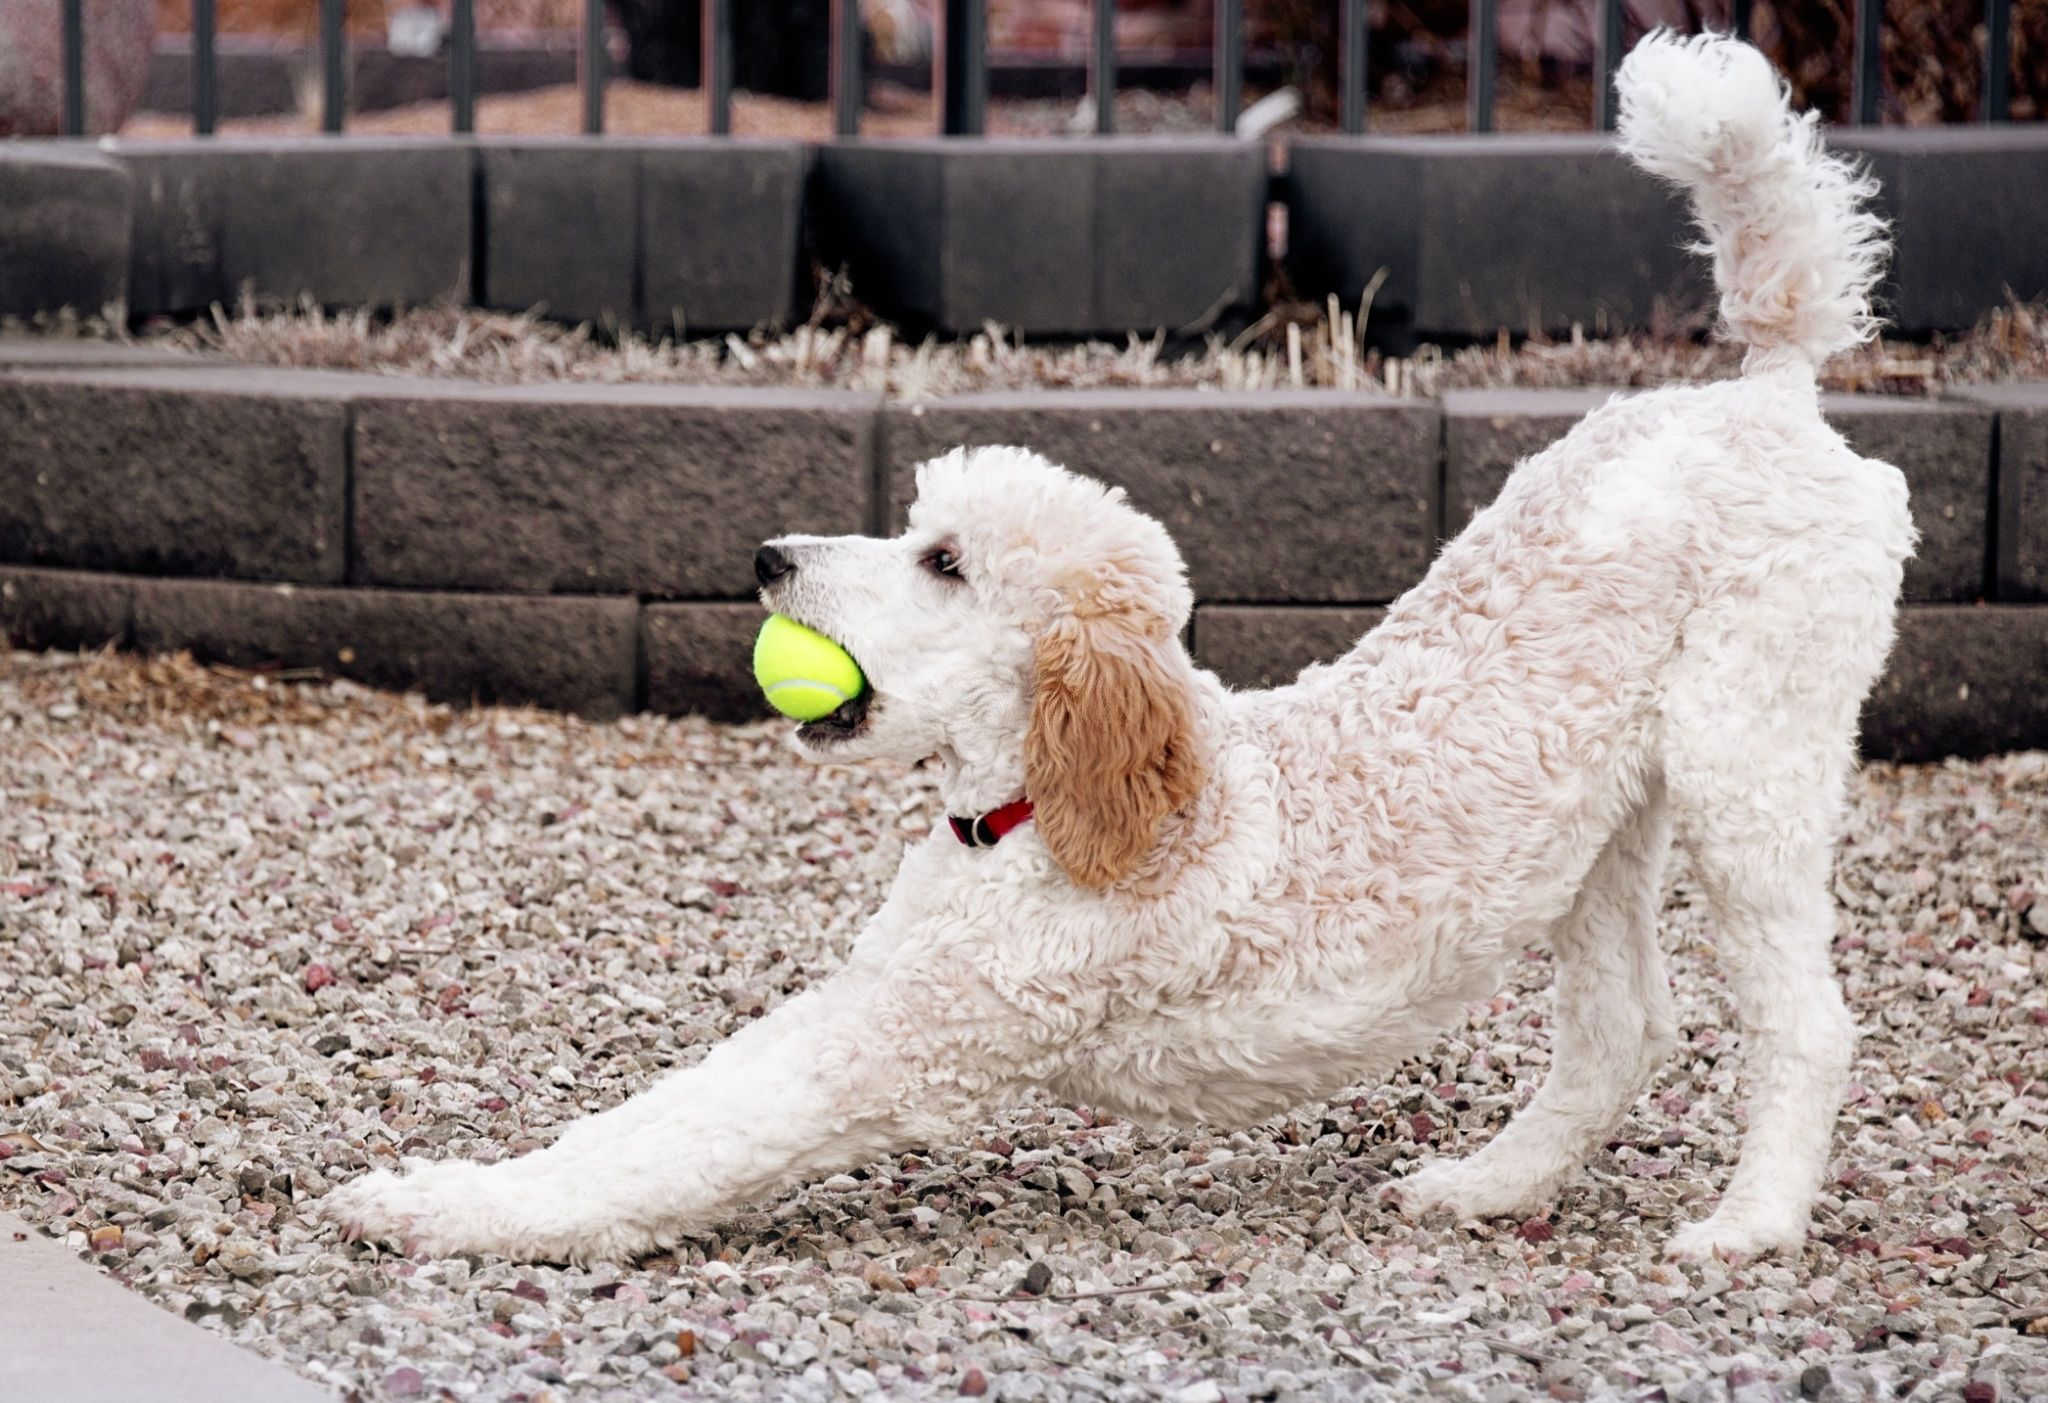 standard poodle puppy stretching